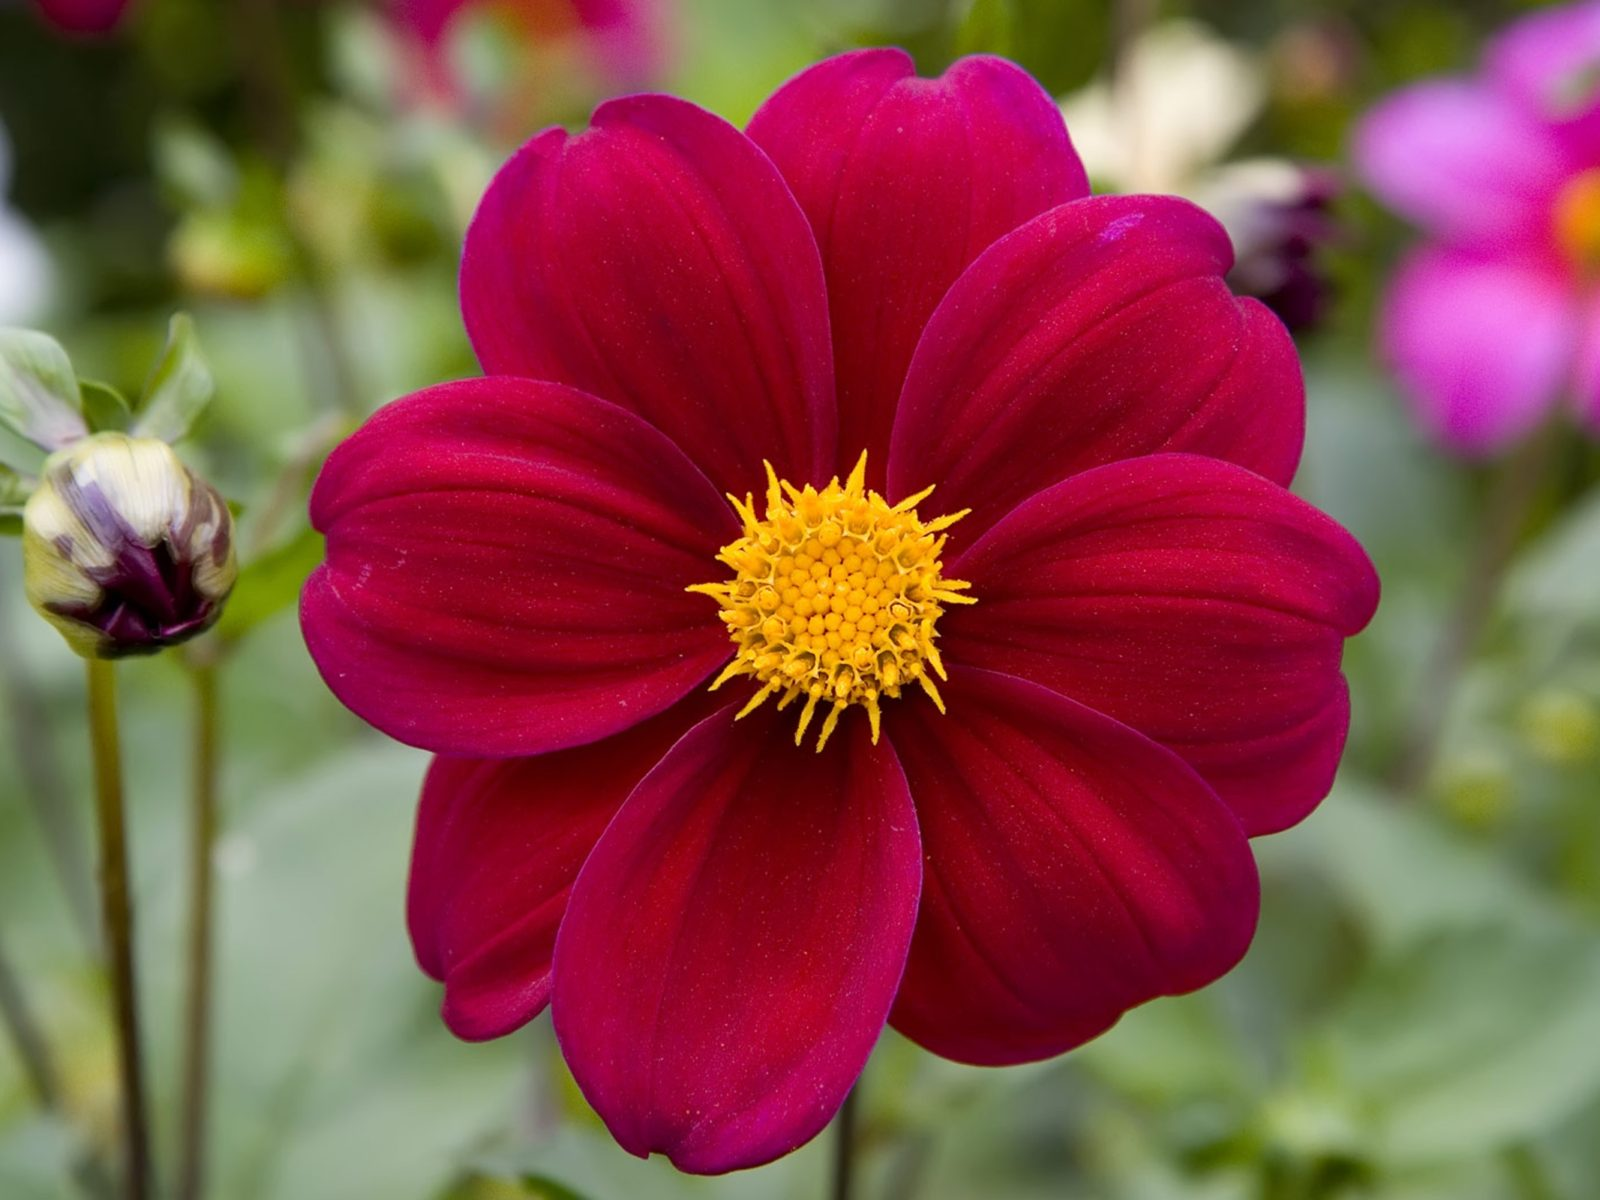 The Flash Iphone Wallpaper Deep Red Dahlia 74341 Wallpapers13 Com